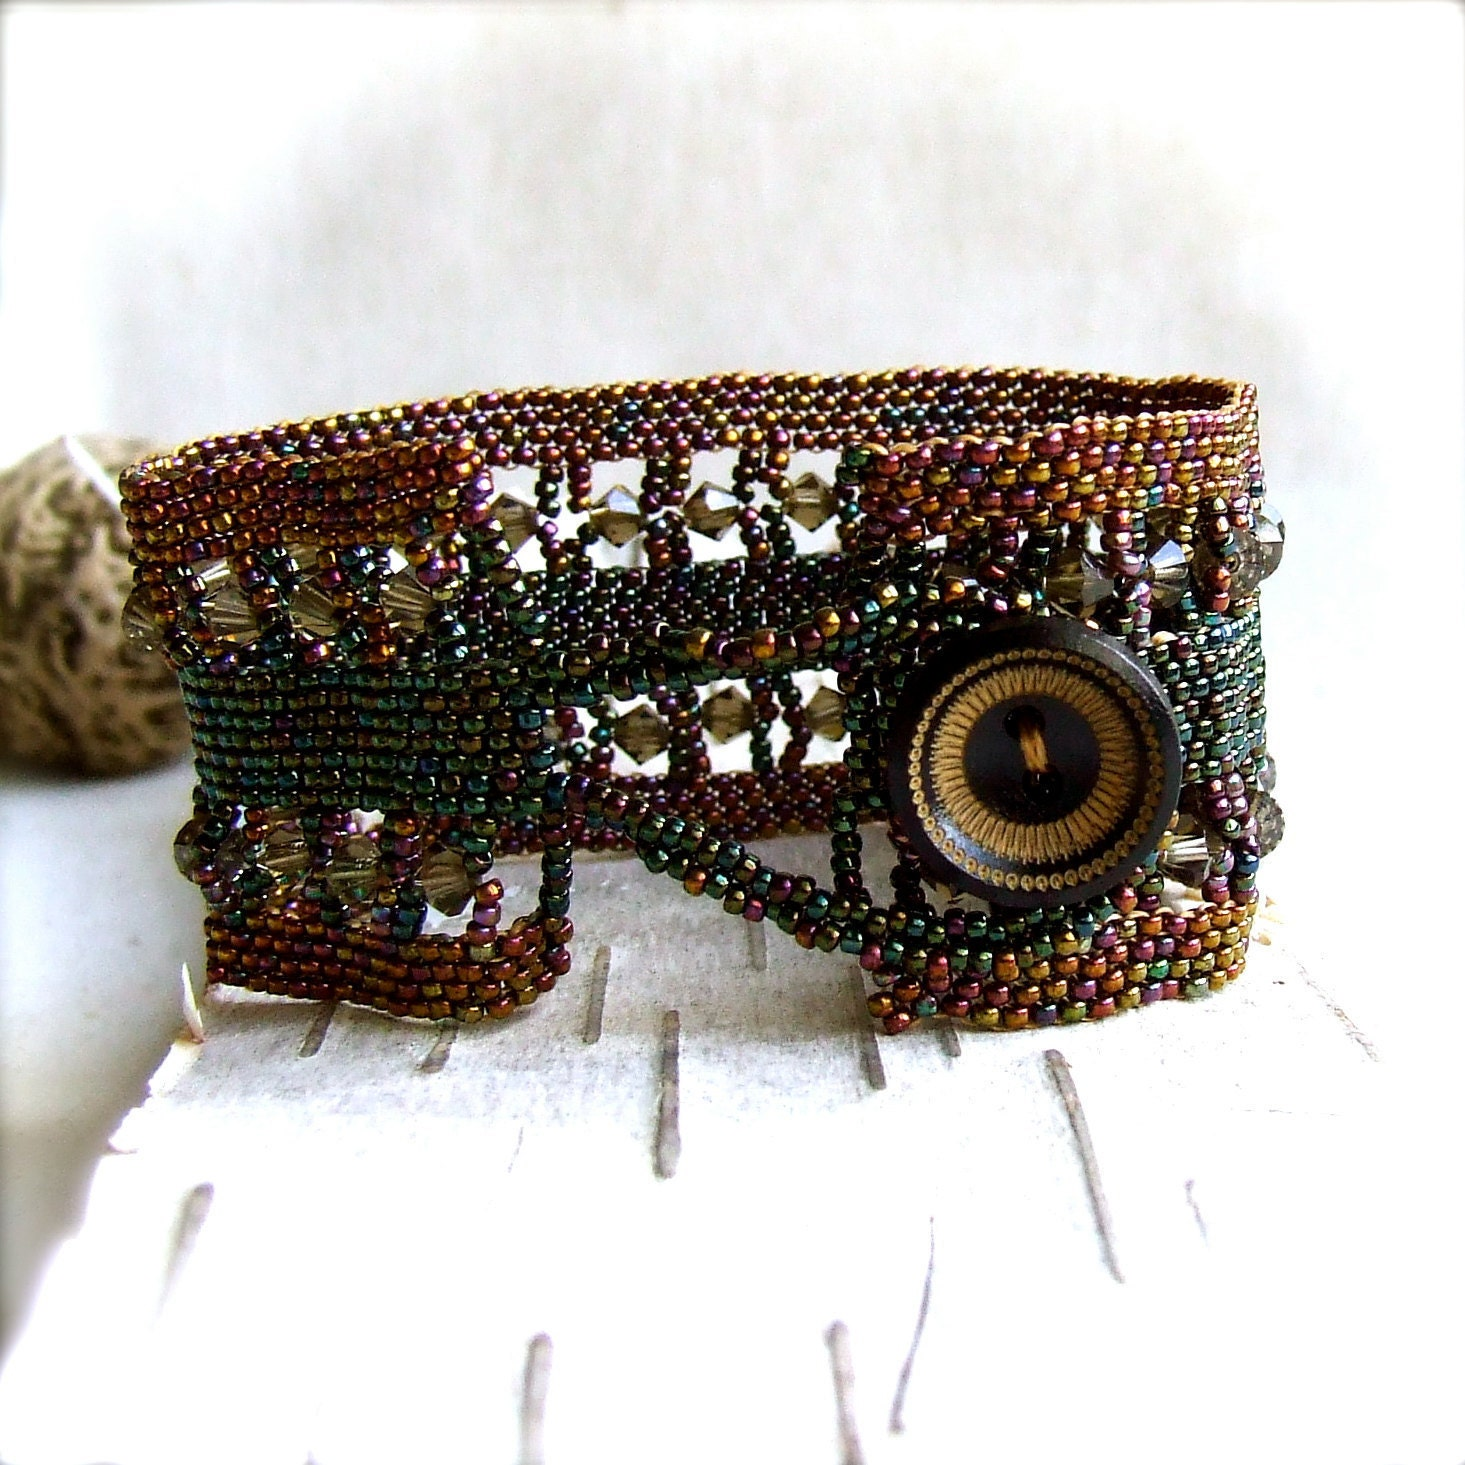 Wood, Glass Seed Beaded - Beadwoven Statement Bracelet -Tapestry - Beadwoven Jewelry - Handmade Fashion - balanced